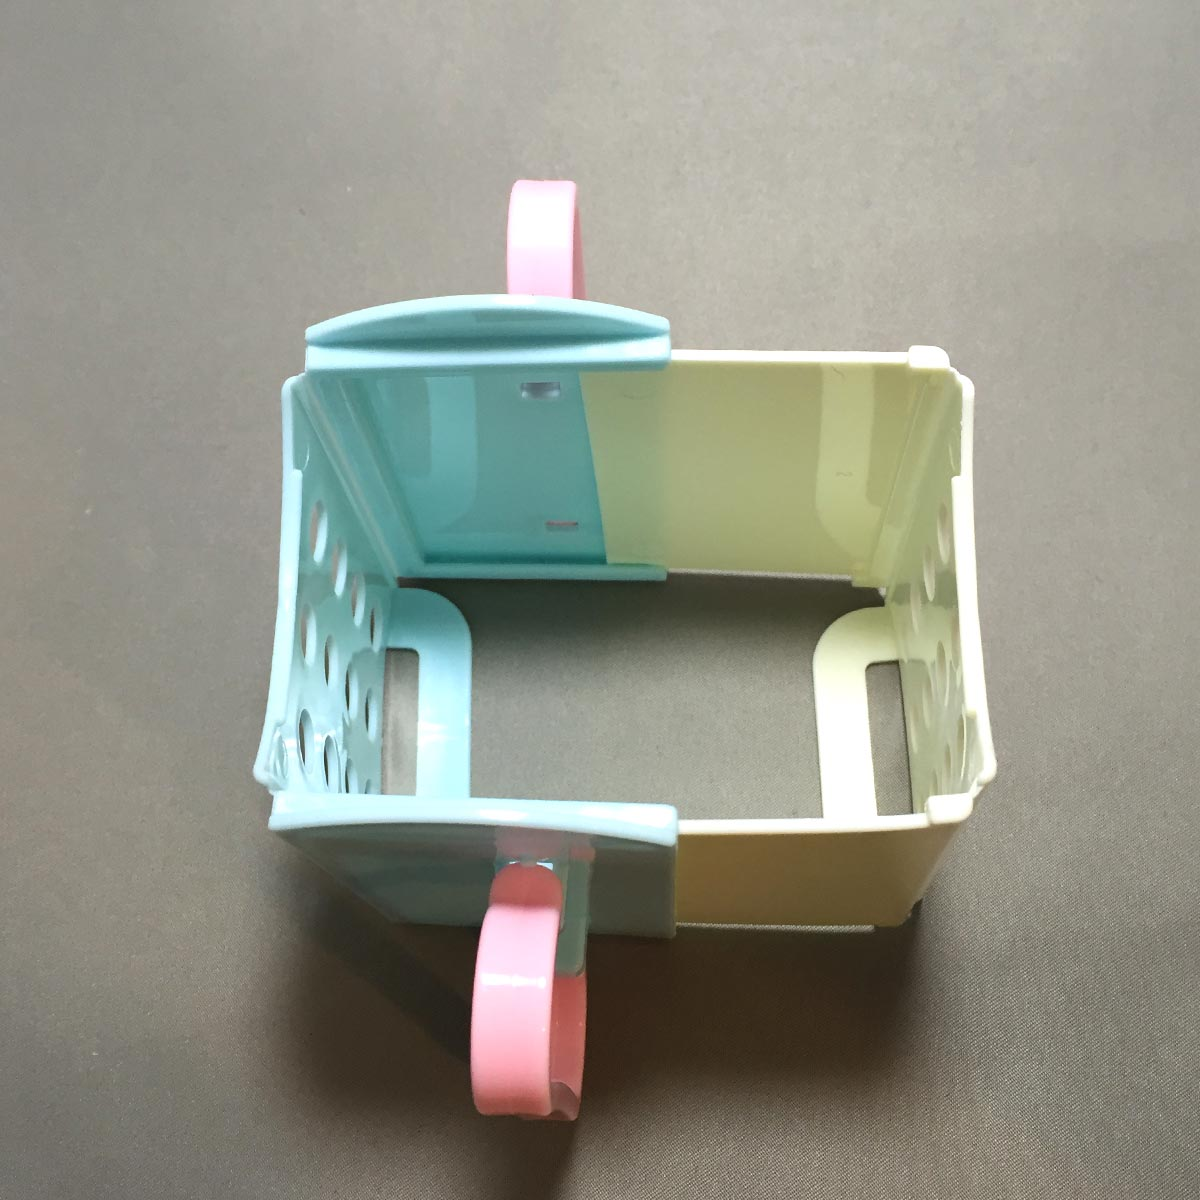 Folding Drink Box Holder - Opened and expanded top view